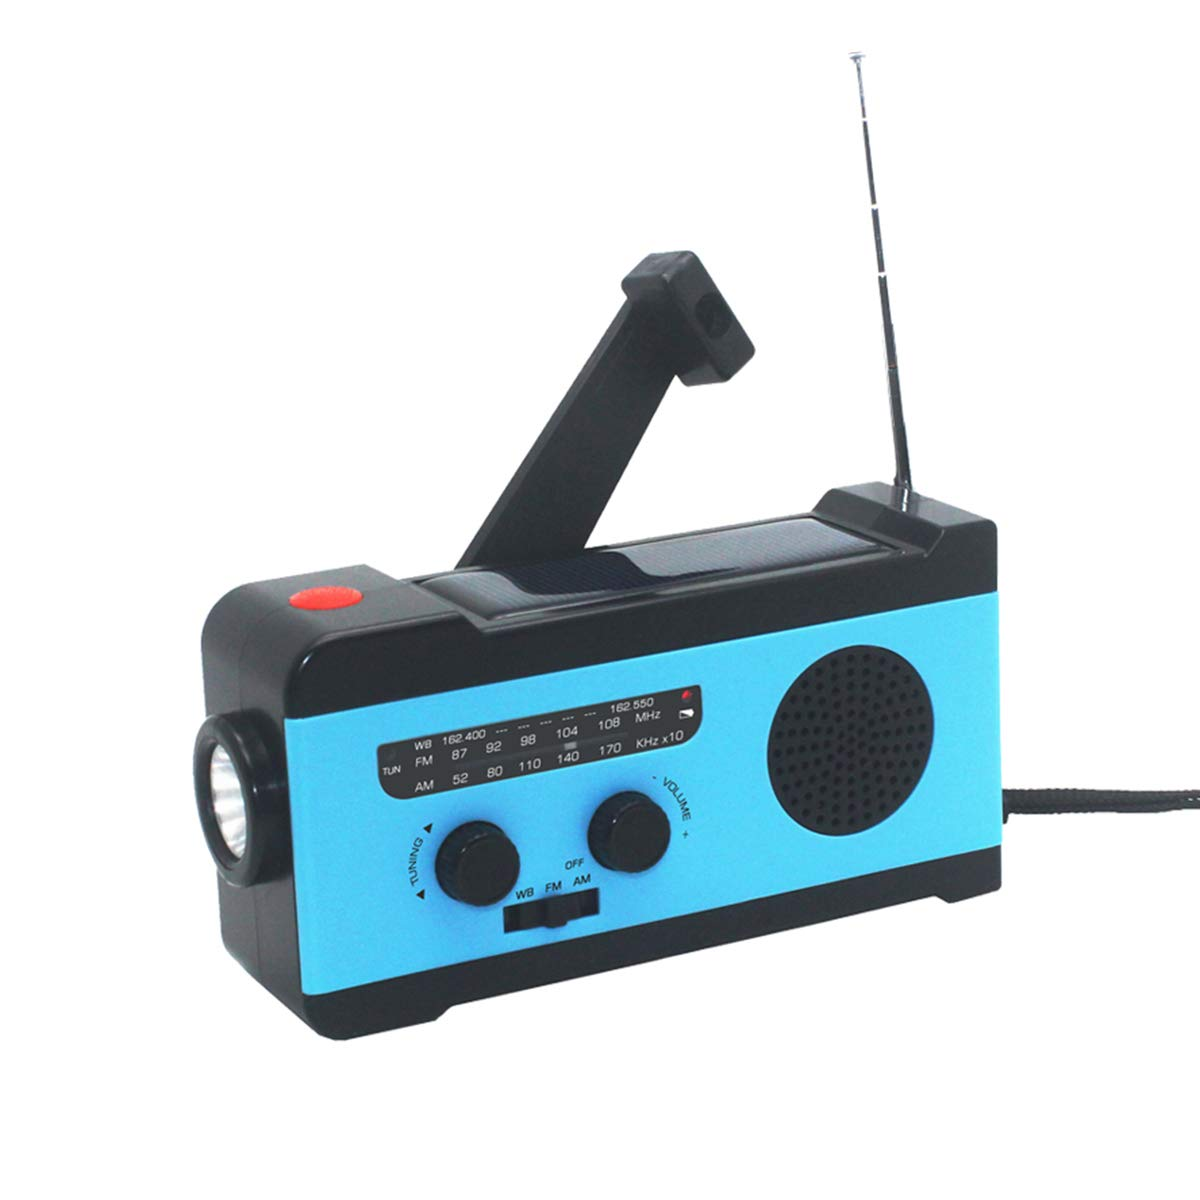 VOSAREA Portable Radio FM Receiver Emergency Radio with Alarm Clock FM Radio FM Receiver